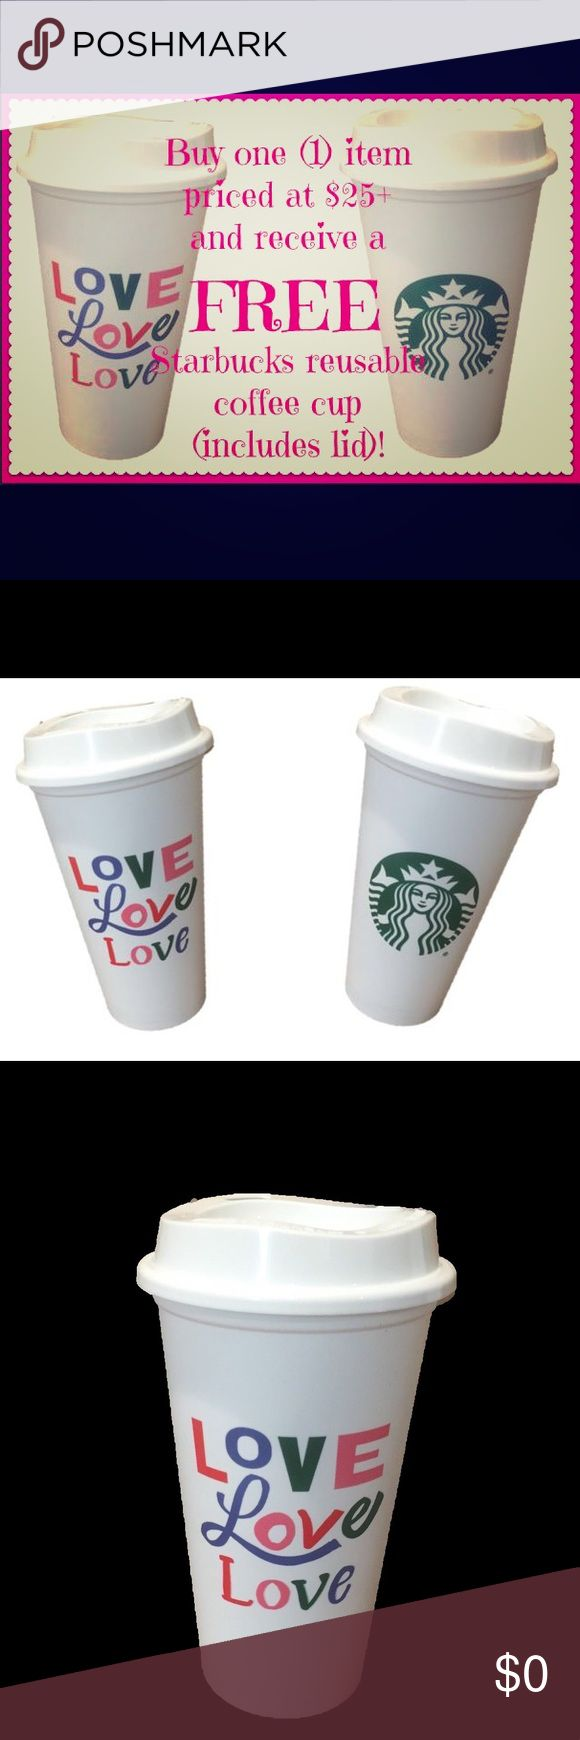 FREE Starbucks coffee cup with $25 purchase! ❤️☕️ When you buy an item priced at $25.00+, you will get a BRAND NEW, FREE Starbucks reusable coffee cup (includes lid)! 🤗☕️❤️  Pictures show design of LOVE which is perfect for Valentine's Day! Keep the cup for yourself or give as a gift by adding your own gift card. 💗  OFFER GOOD WHILE SUPPLIES LAST! Starbucks Accessories